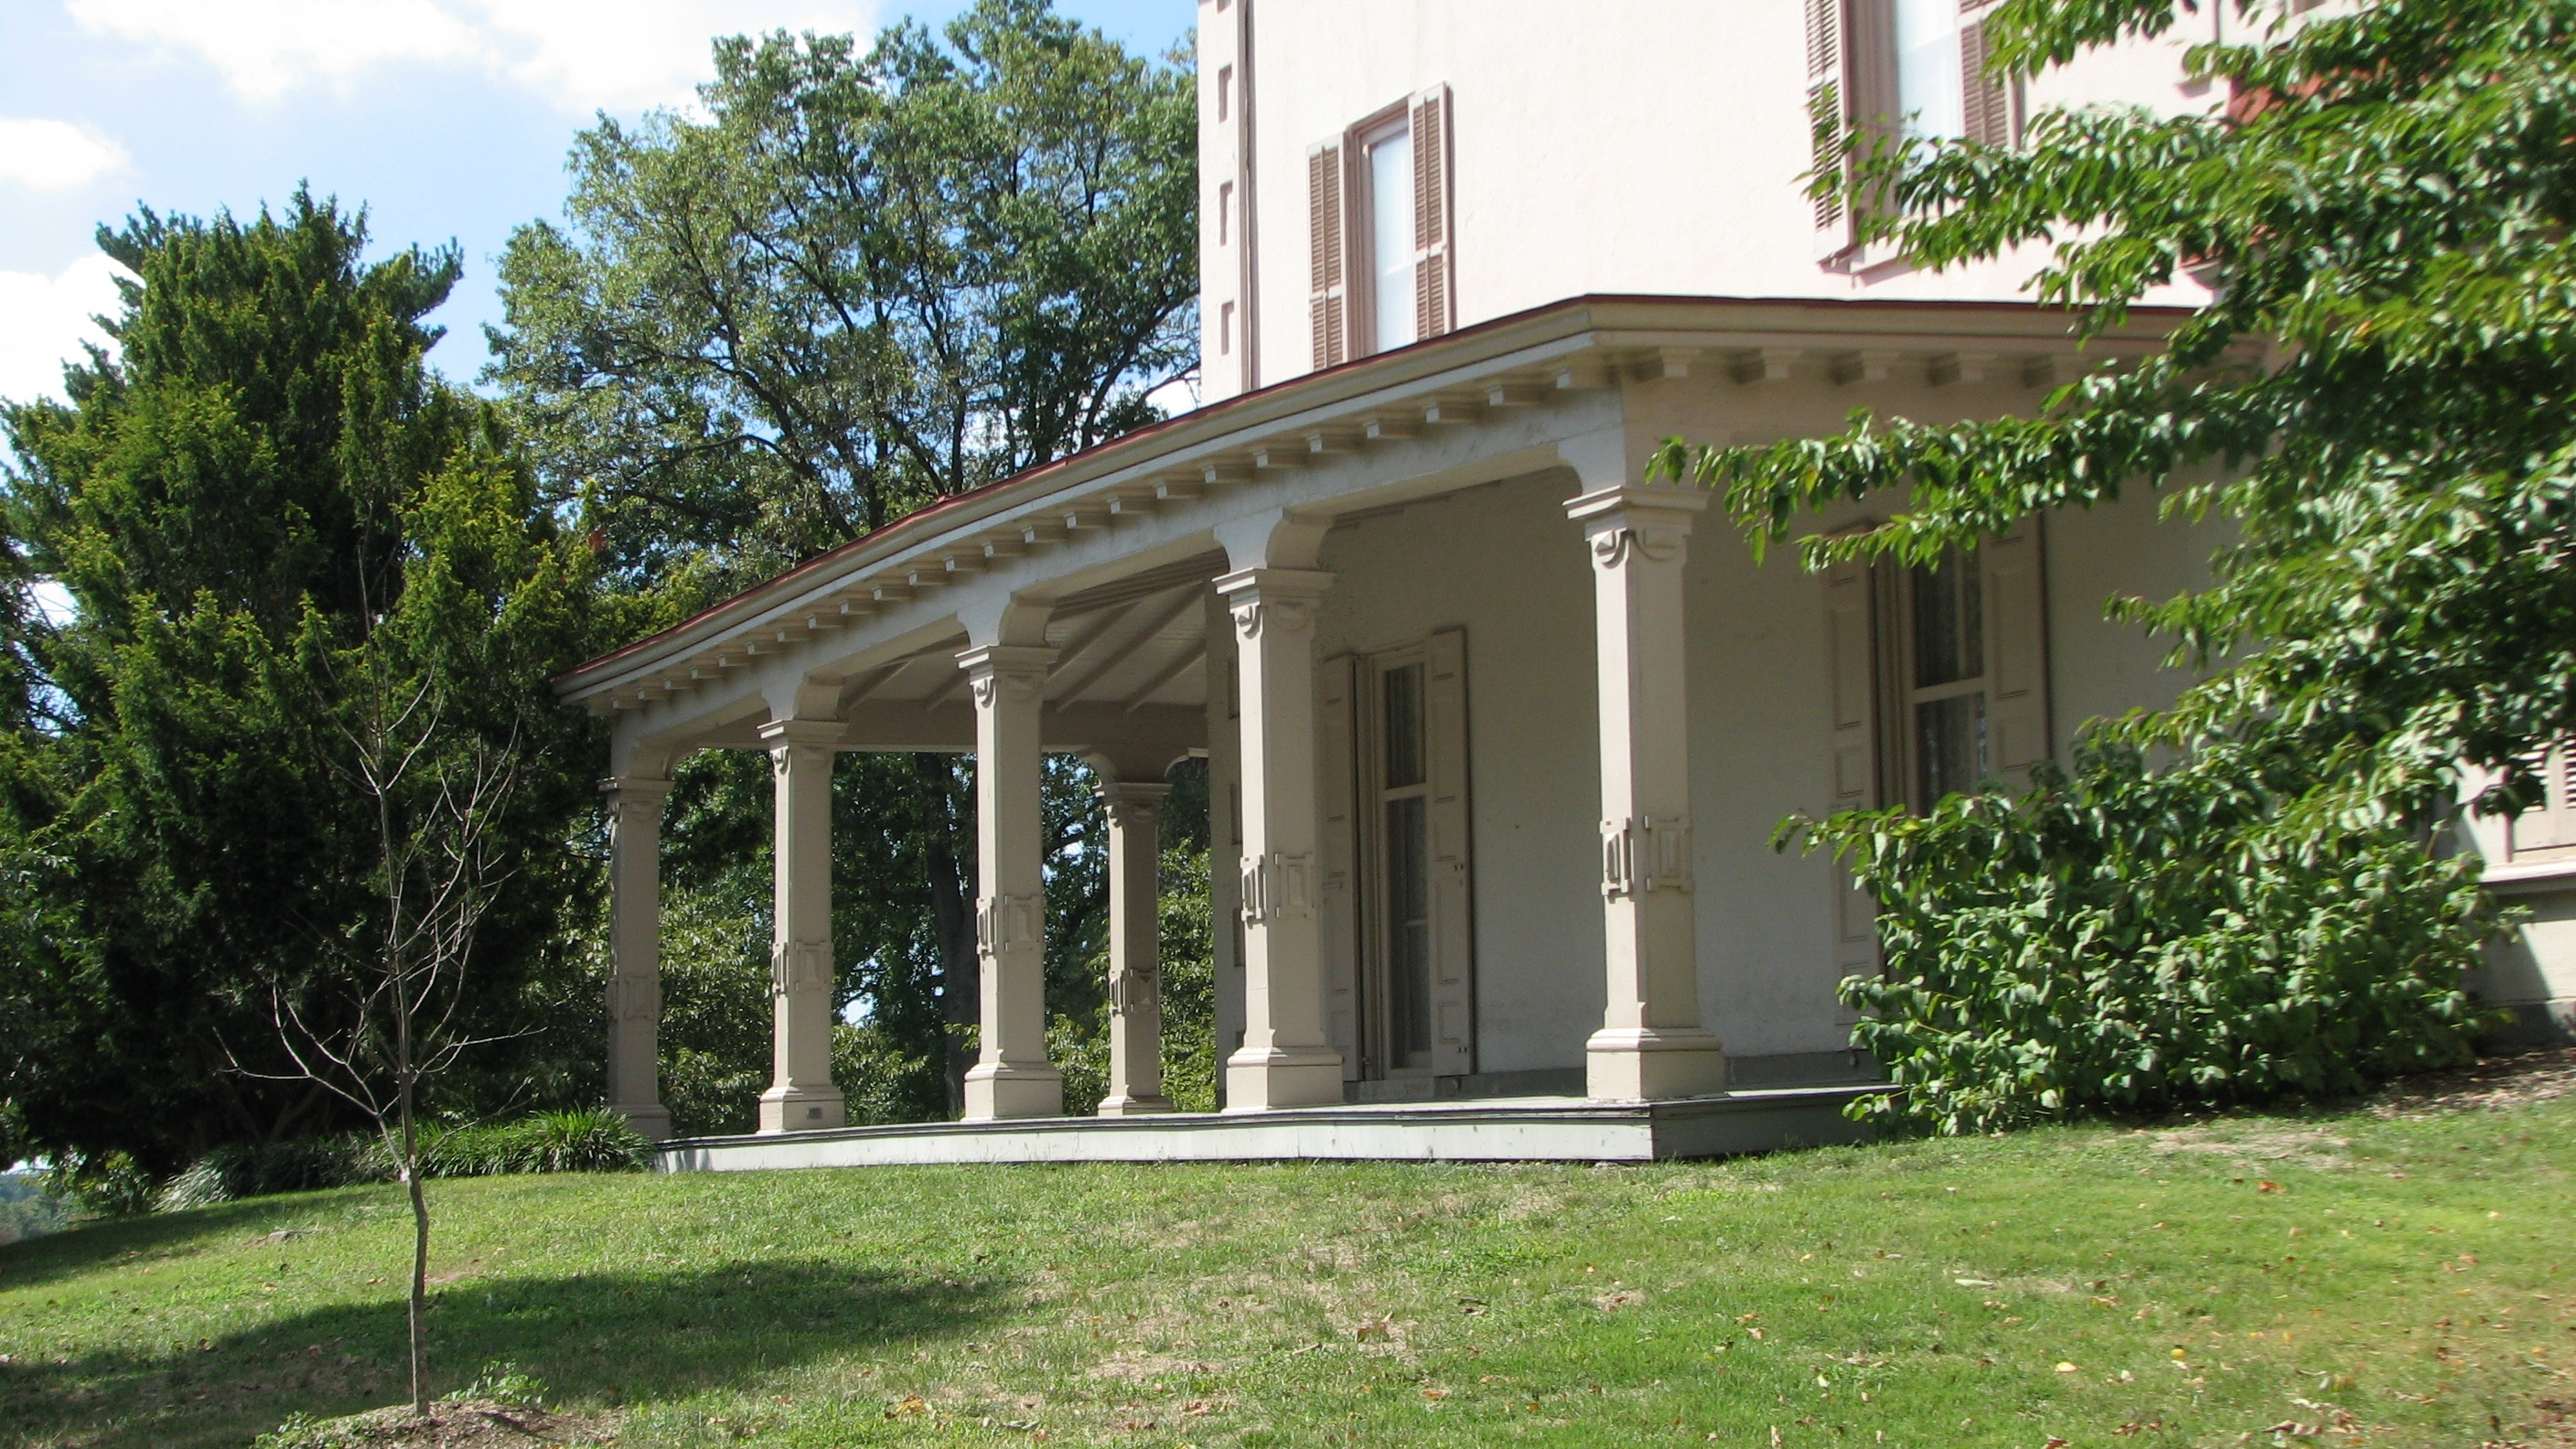 A grand veranda wraps around the Ryerss mansion.